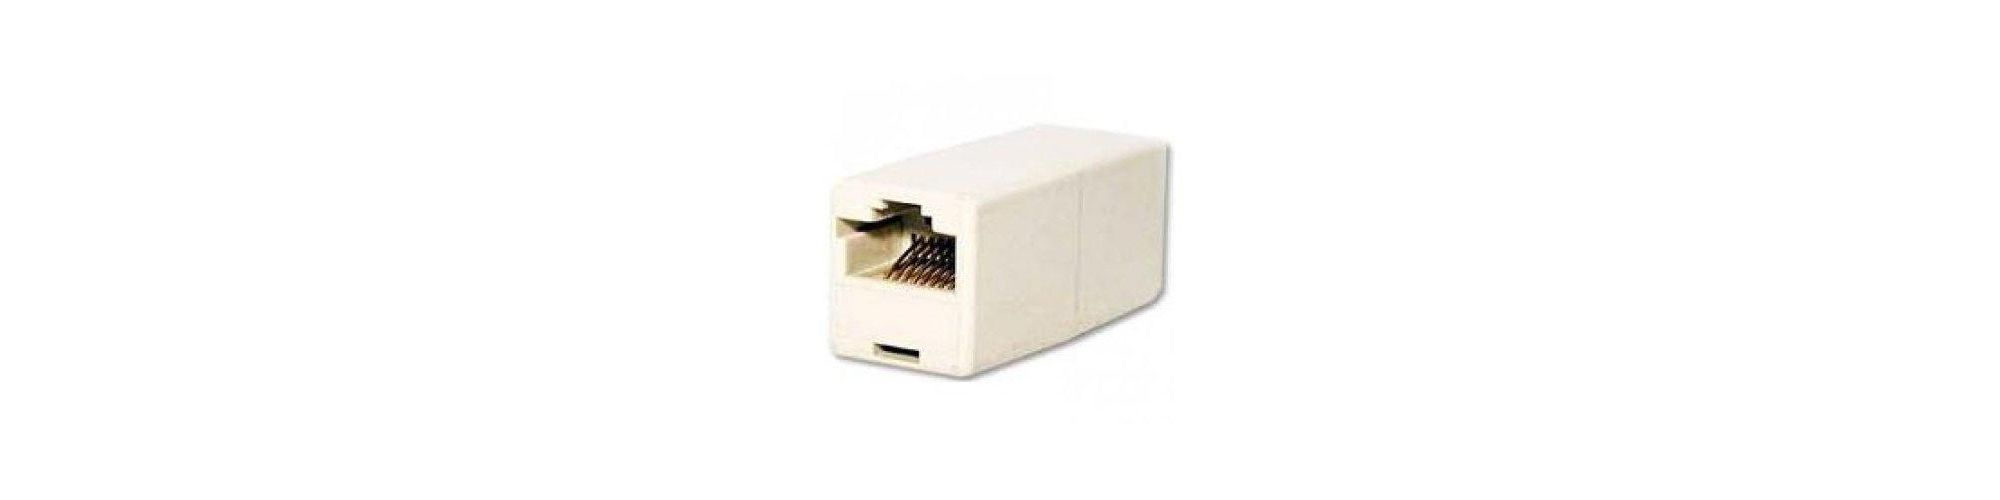 Belkin Cat 6 RJ-45 Inline Coupler (White)